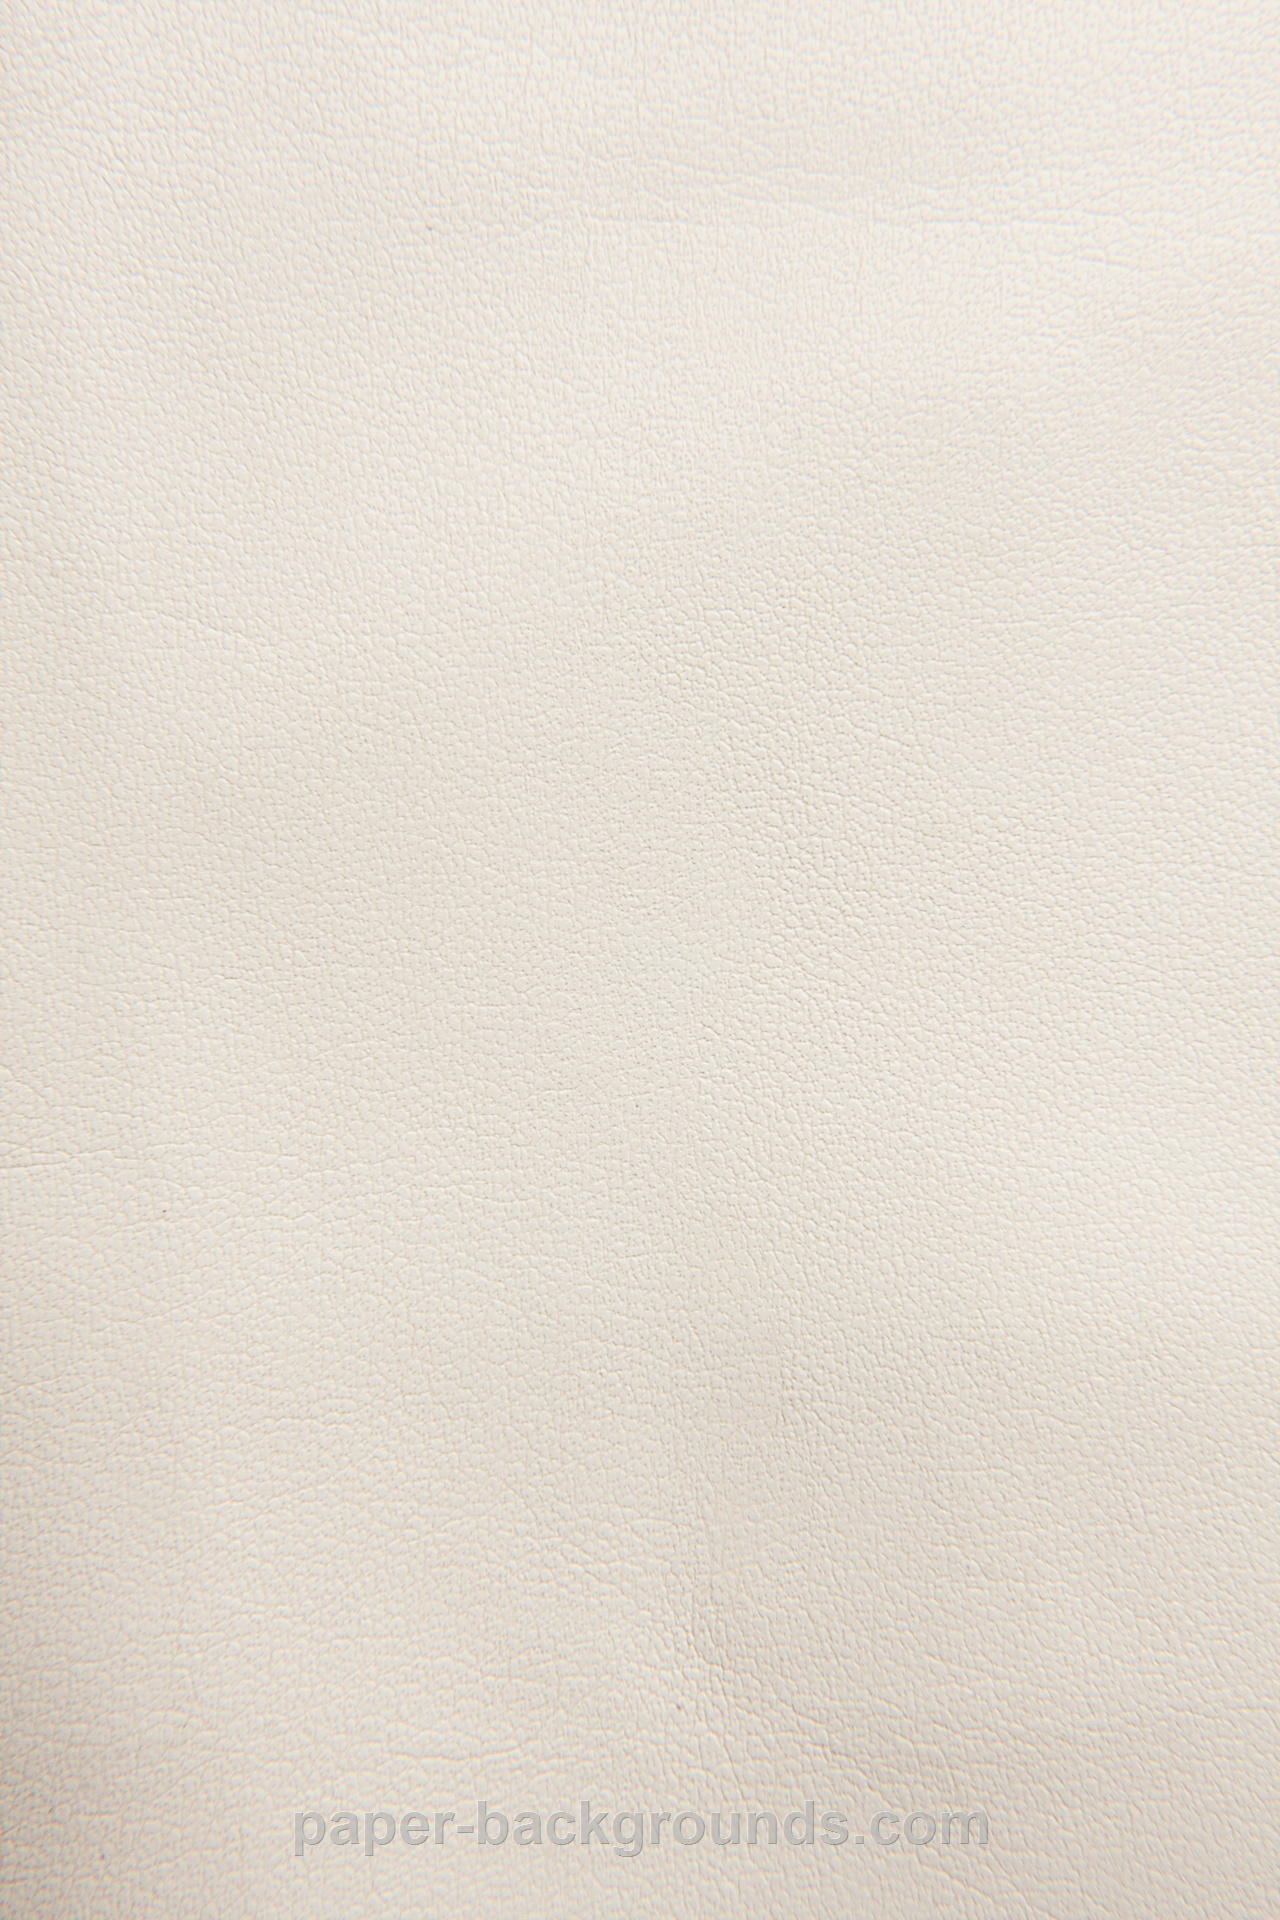 White Leather Texture Free HD